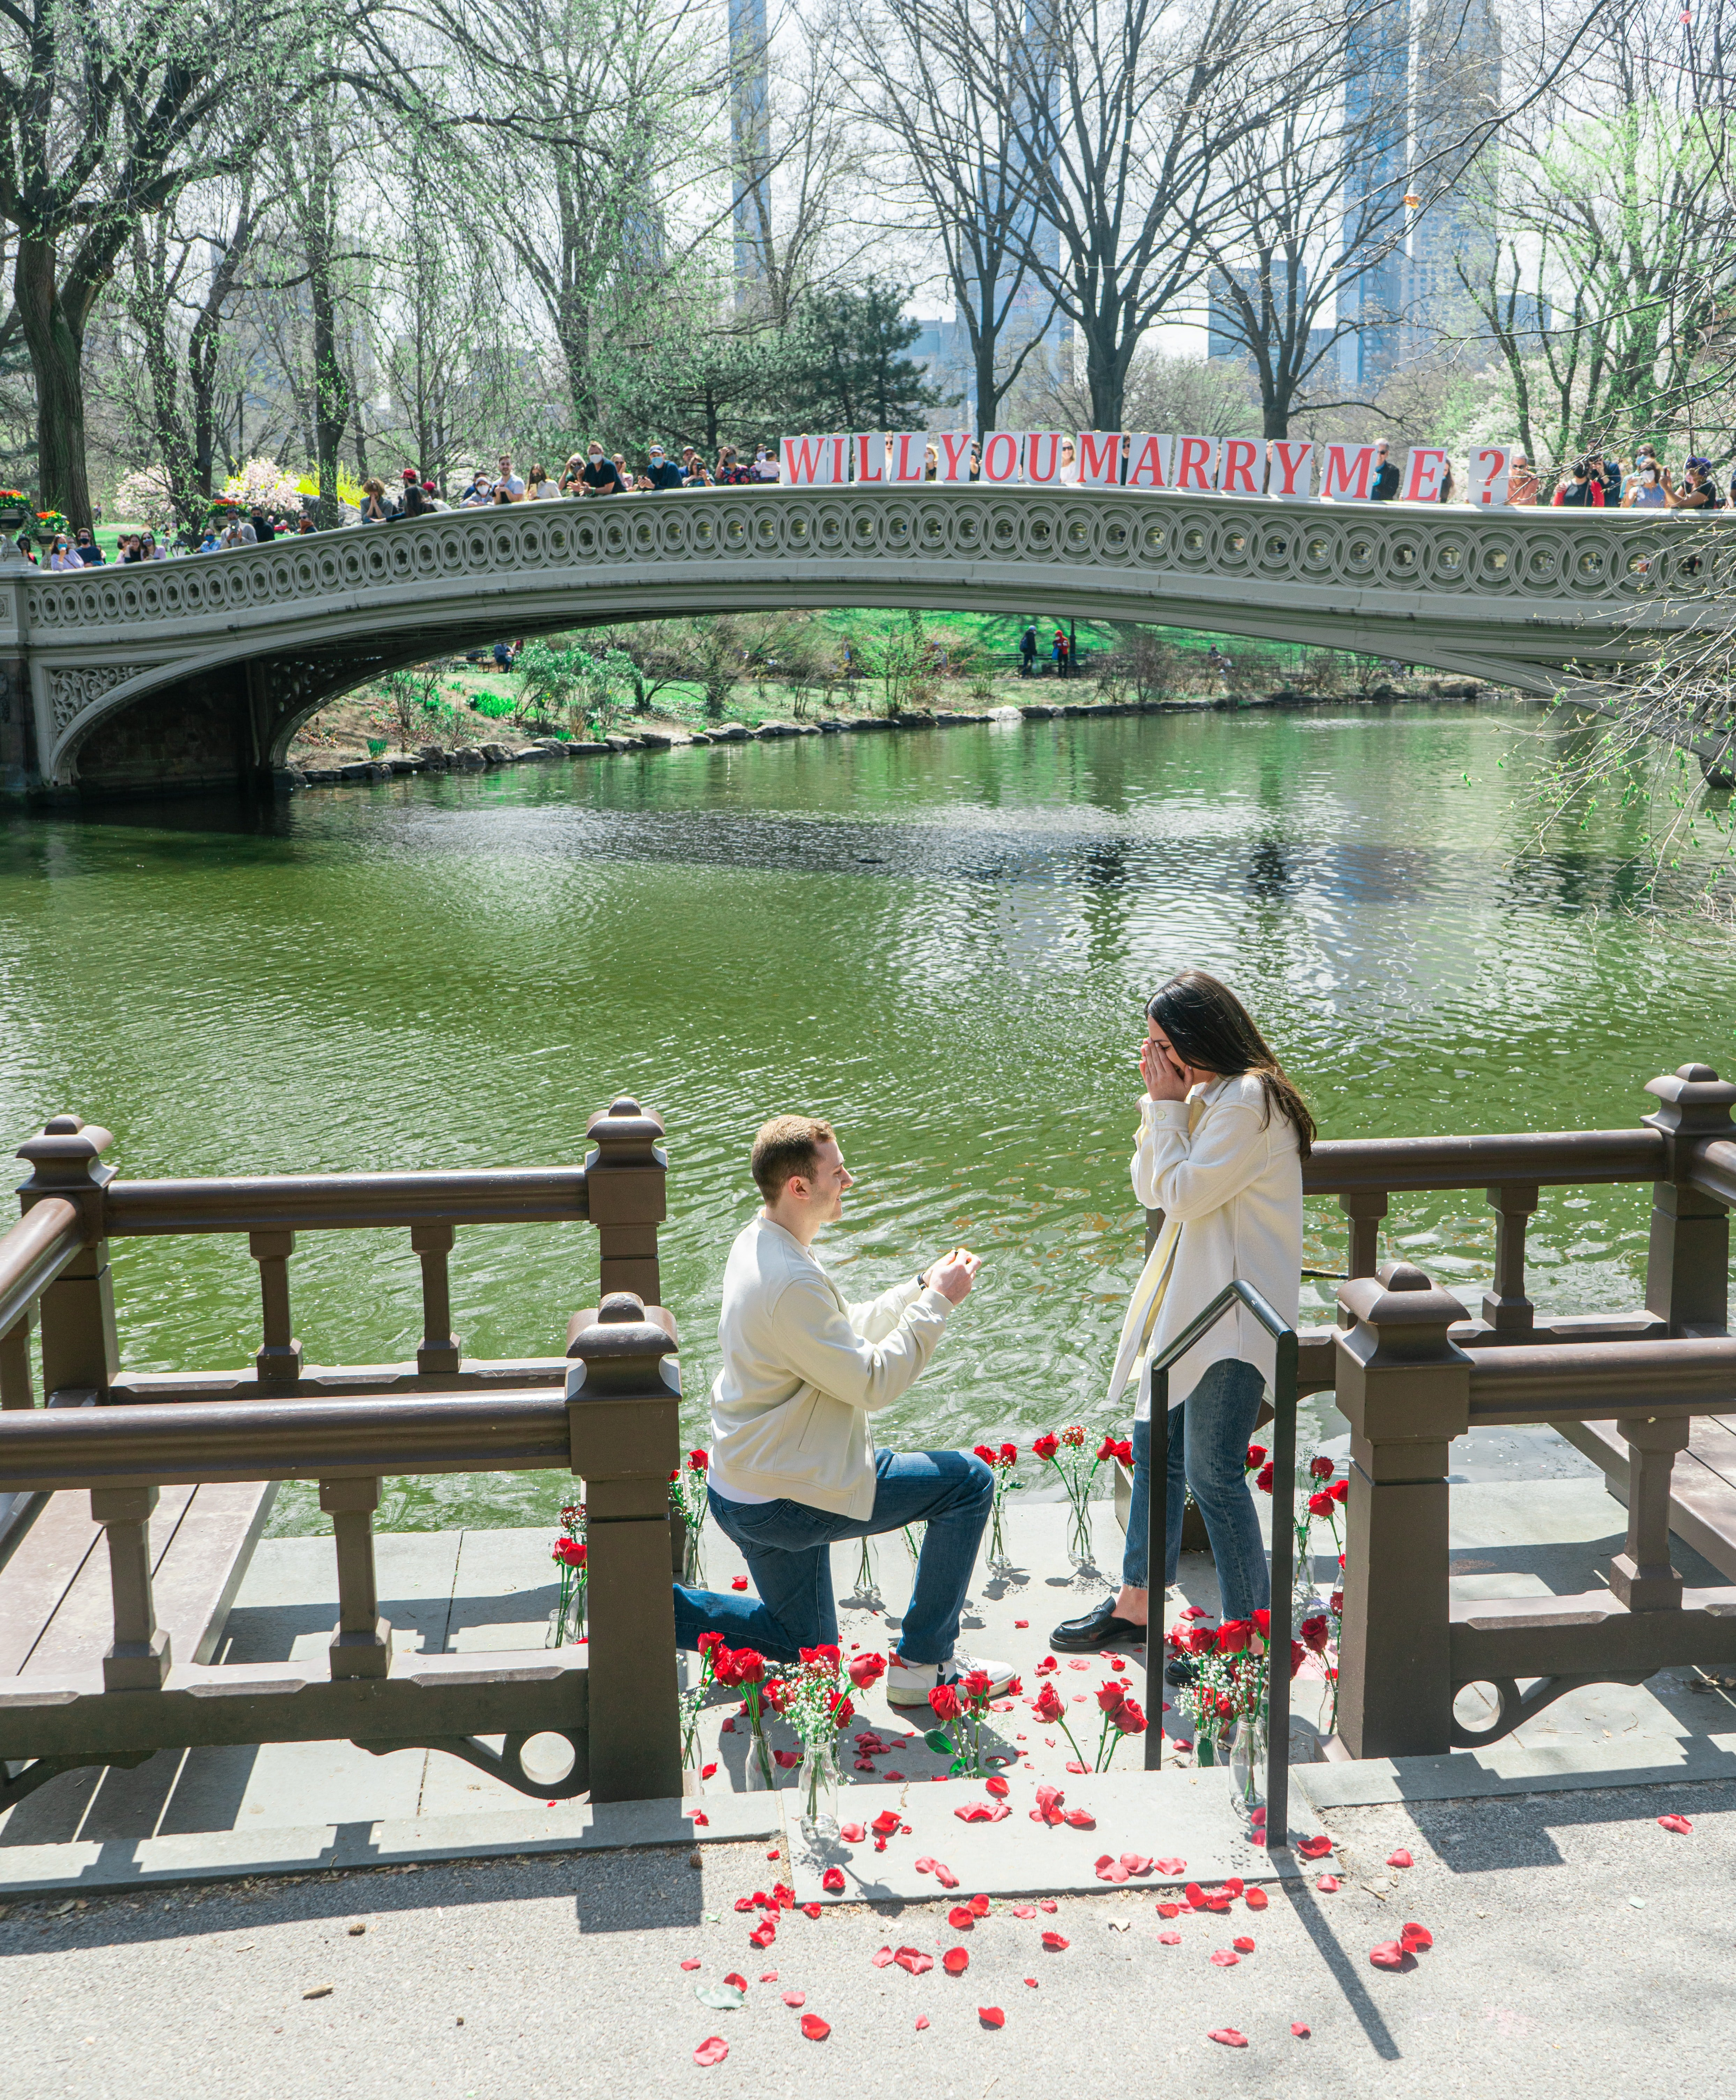 A man elaborately proposes to a woman next to a river with red roses a sign that asks her the big question | Photo: Unsplash/Dylan Sauerwein